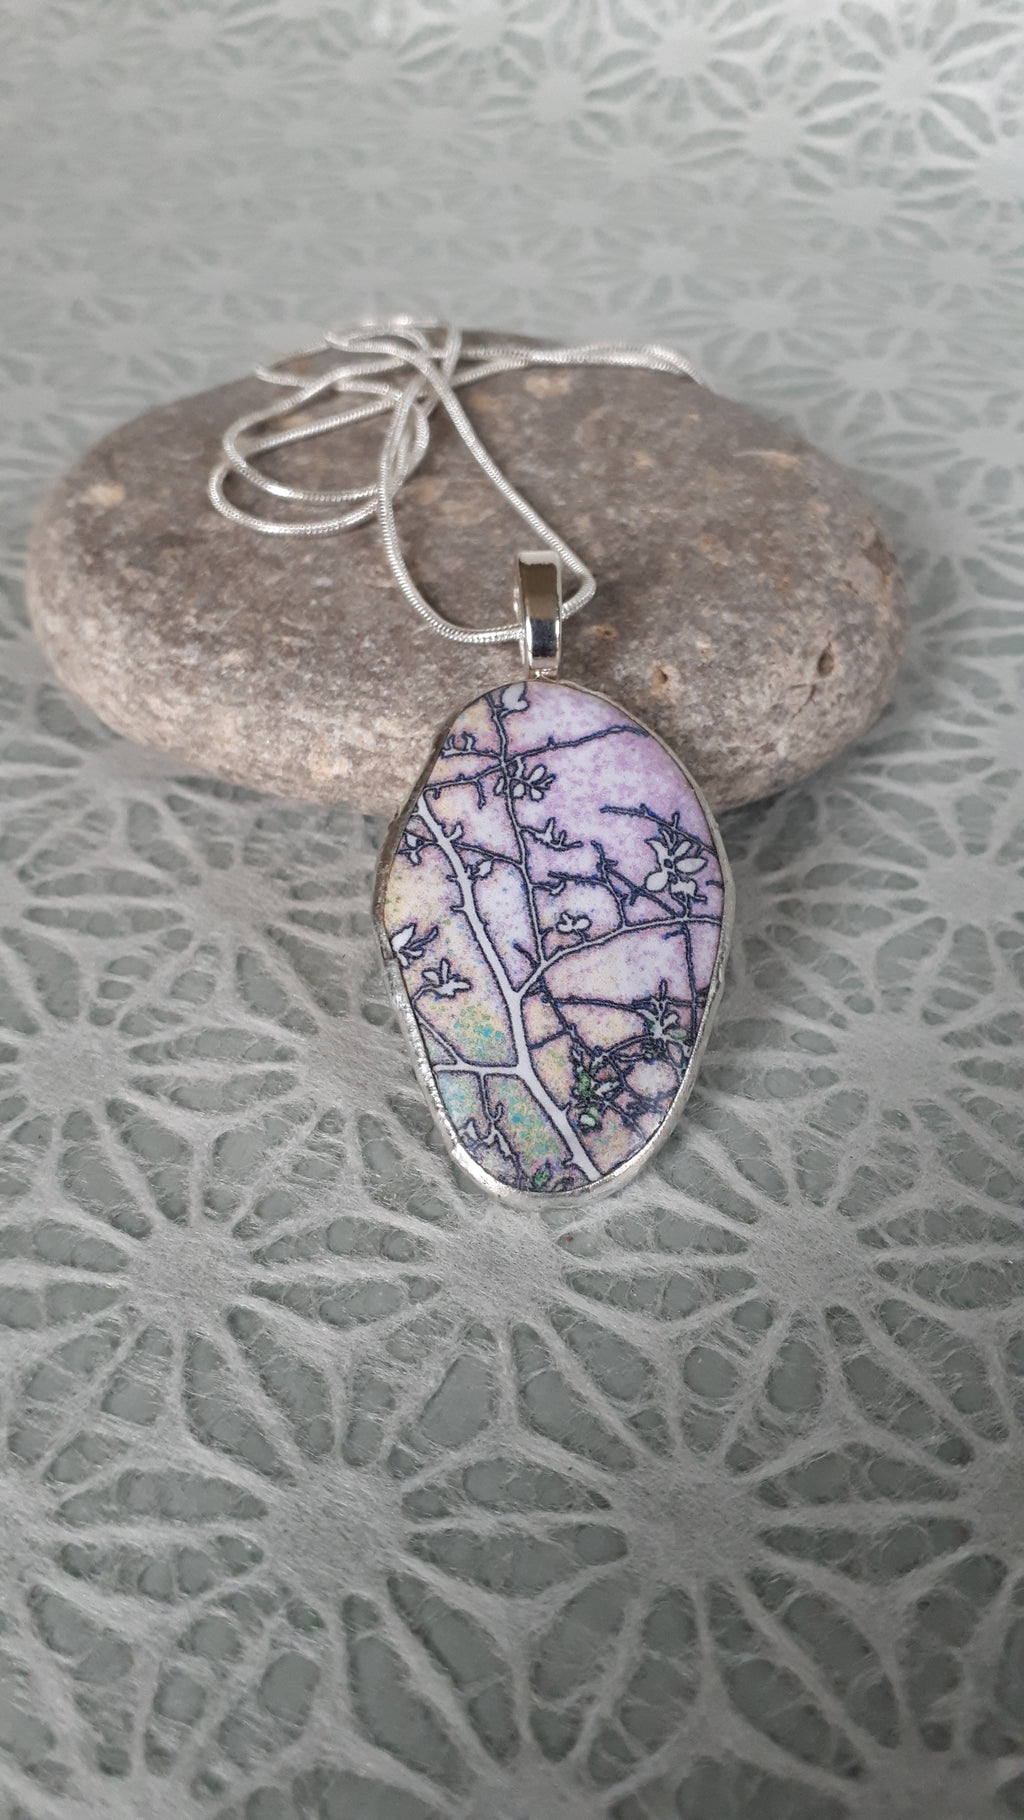 SPRING BRANCHES LAKE ERIE, Pendant by Karen Cameron